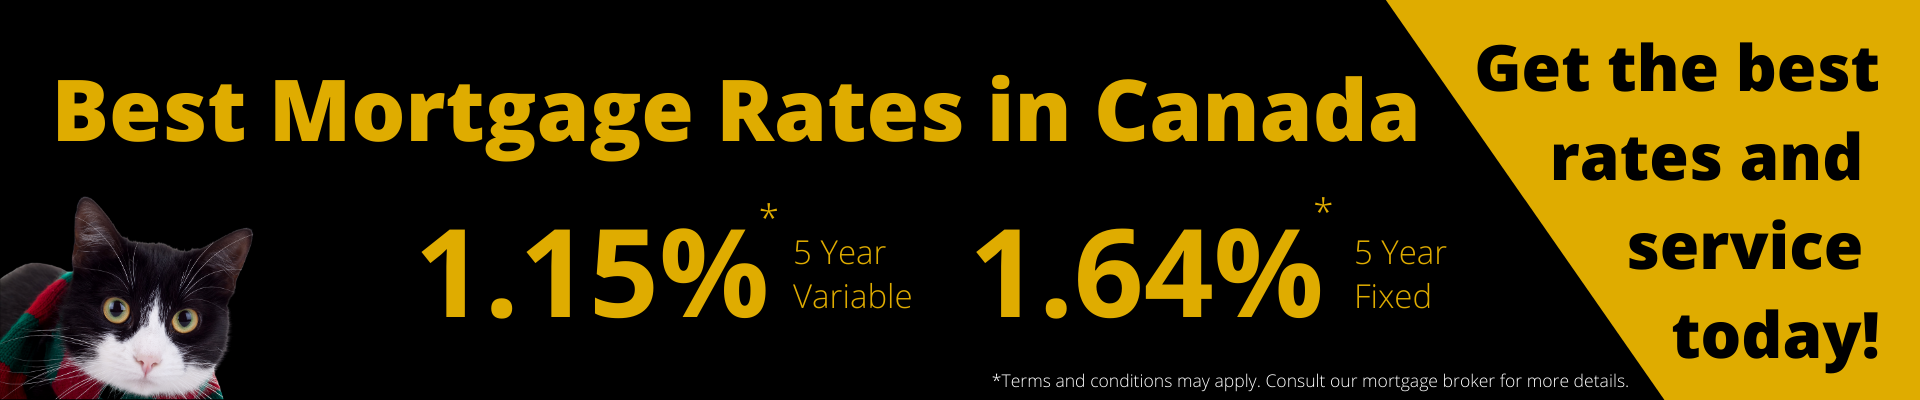 Rates4u _ Citadel Mortgages Best Mortgage Rates - Canada Prime Rate - BMO - CIBC -TD -HSBC-Scotia bank-Tangerine- National Bank - Defjardins - Best Mortgage Rates 99